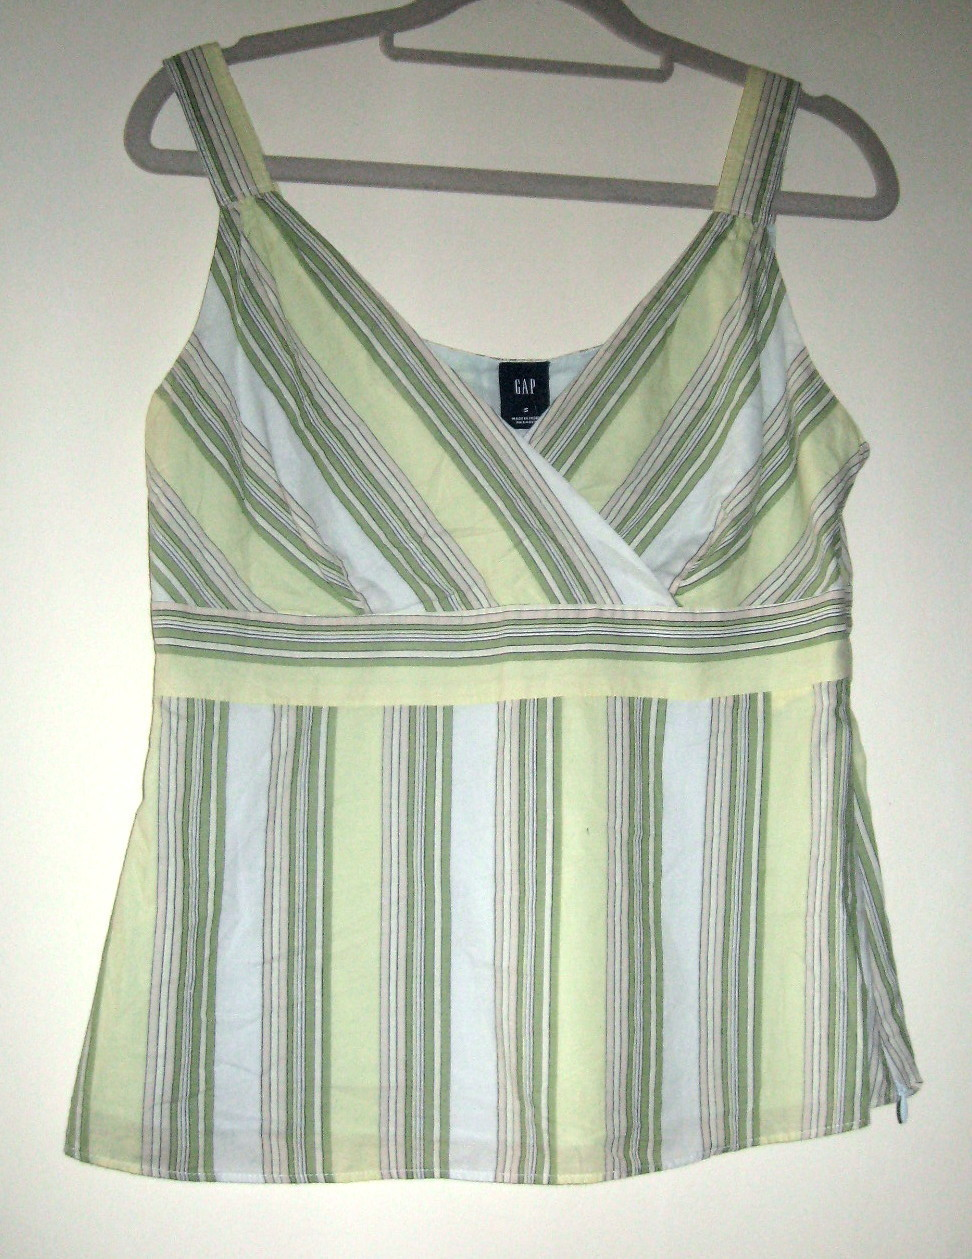 LADIES COTTON TOP BY GAP, SIZE SMALL, LIGHT GREEN, GREEN & BEIGE SLIM STRIPES